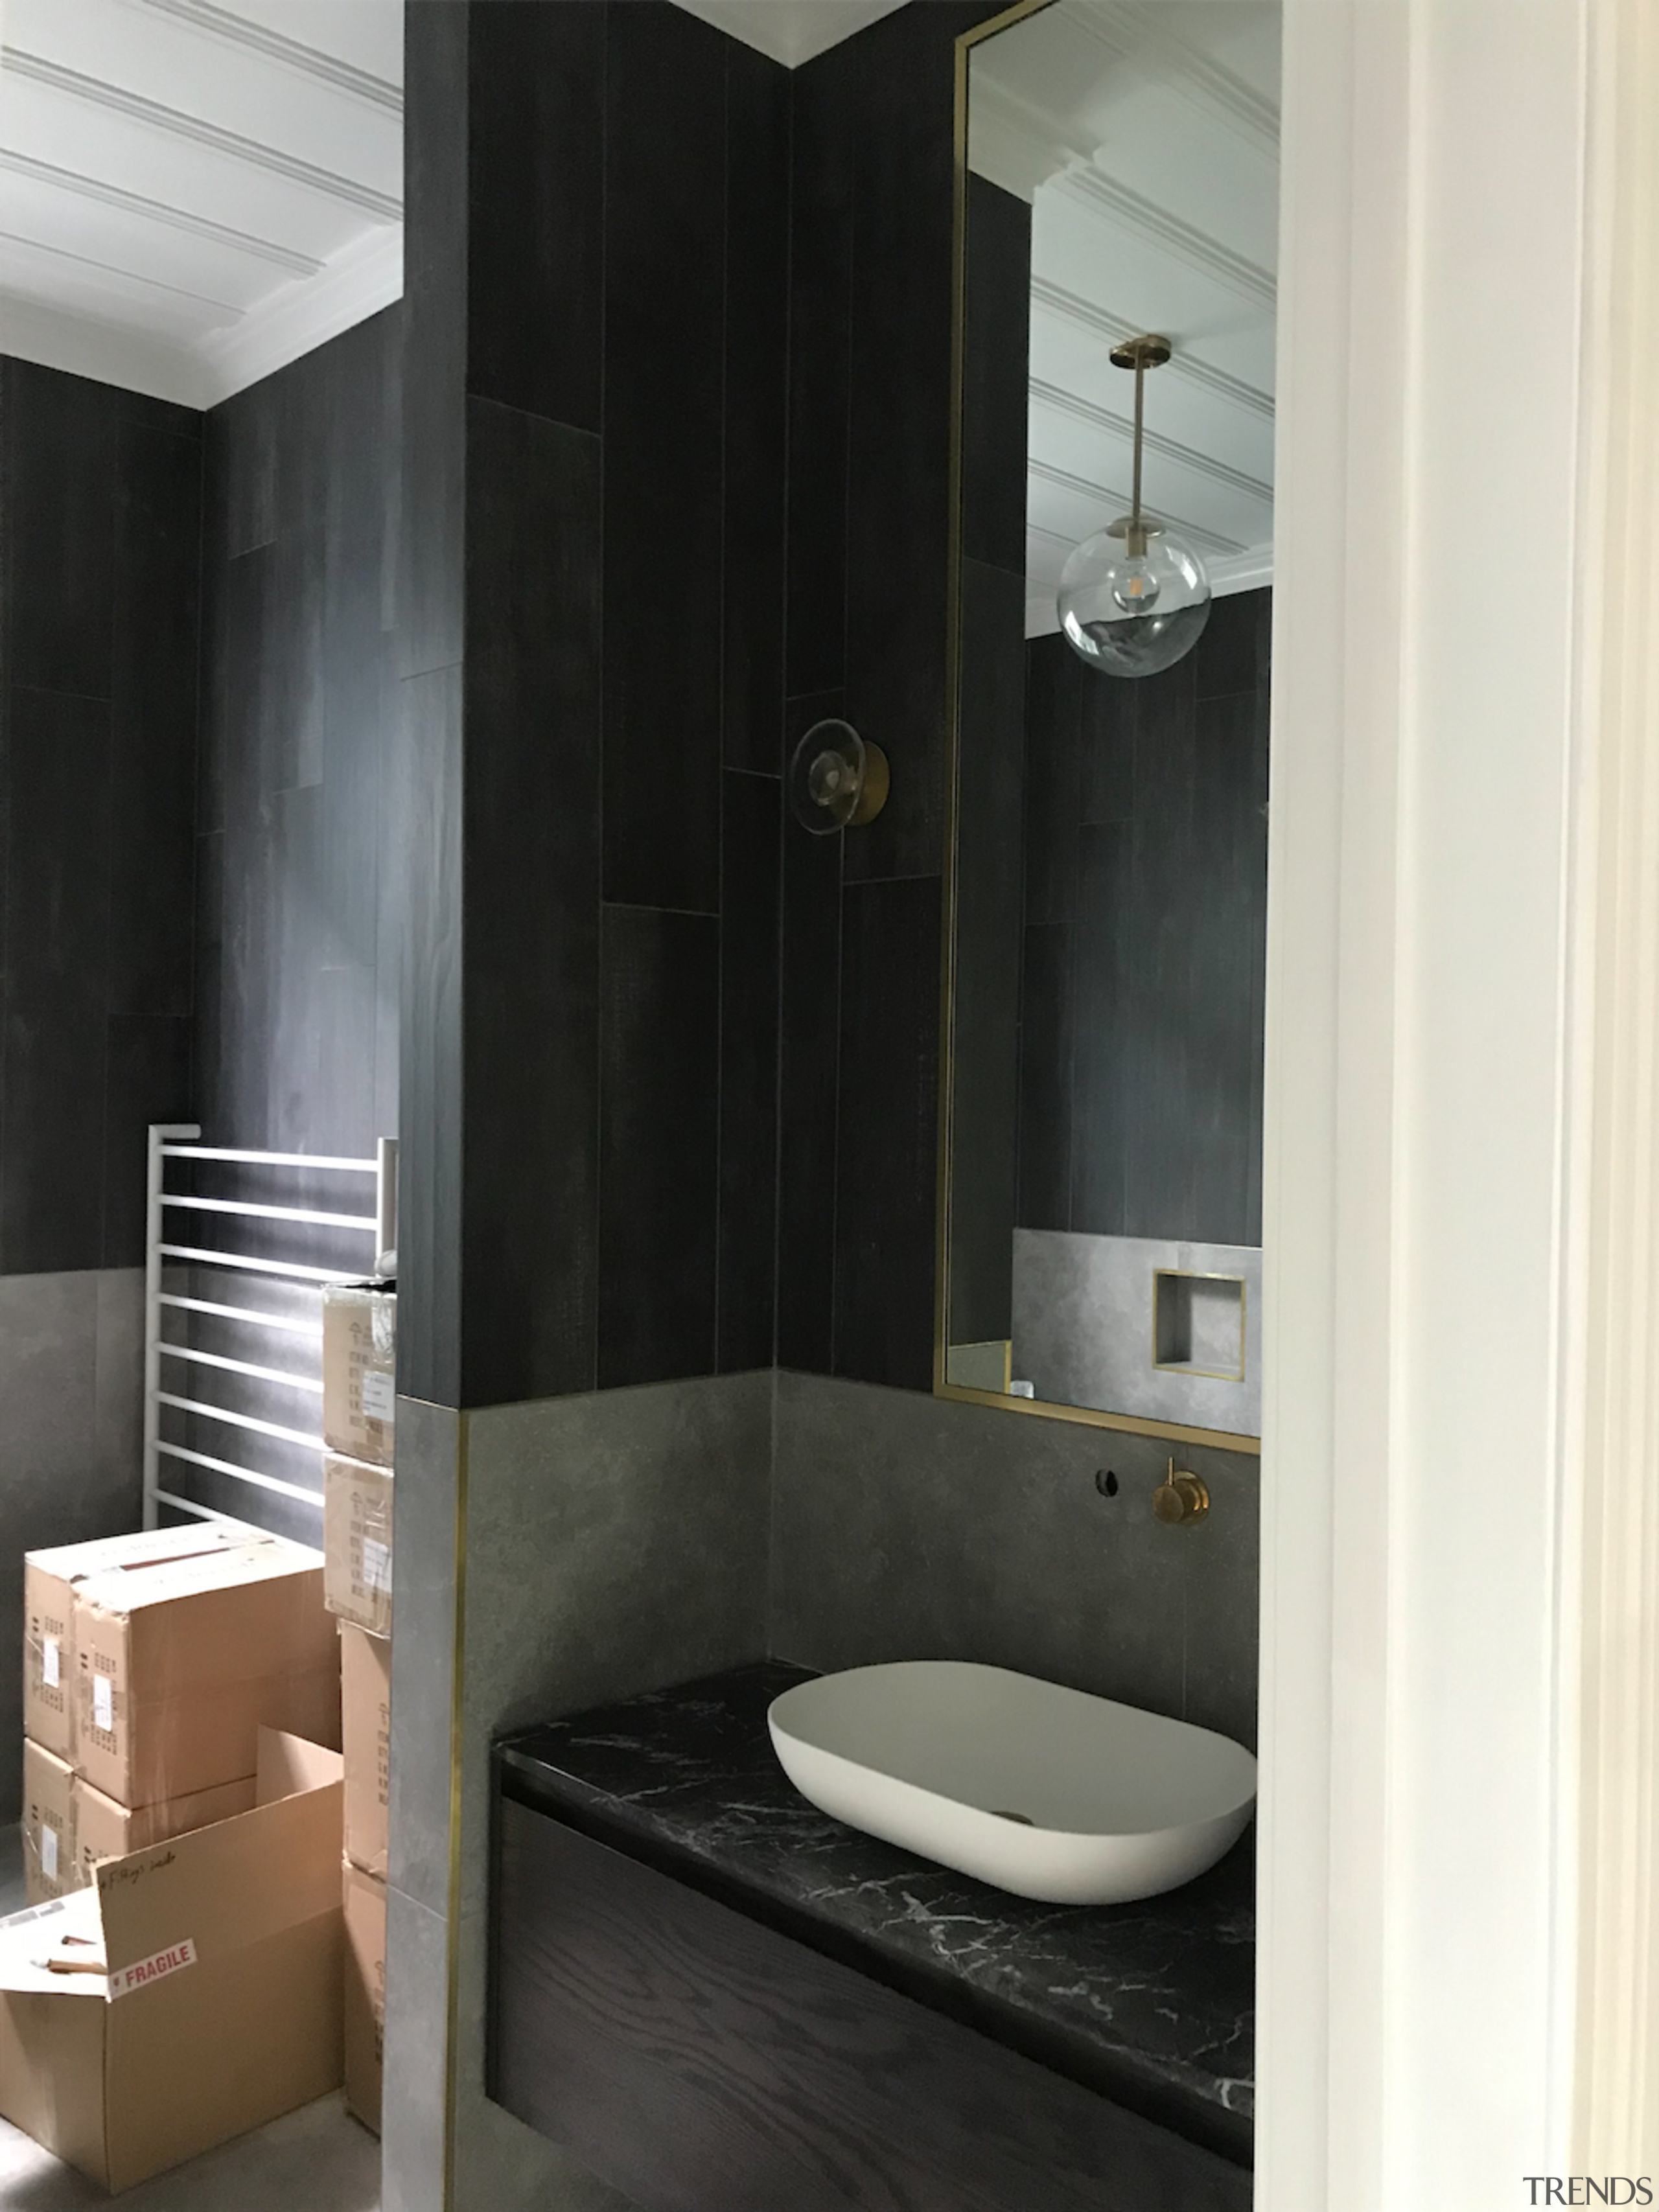 Diary of a renovation: Volume three - architecture architecture, bathroom, bathroom accessory, bathroom cabinet, building, floor, furniture, house, interior design, marble, plumbing fixture, property, room, sink, tap, tile, toilet, black, white